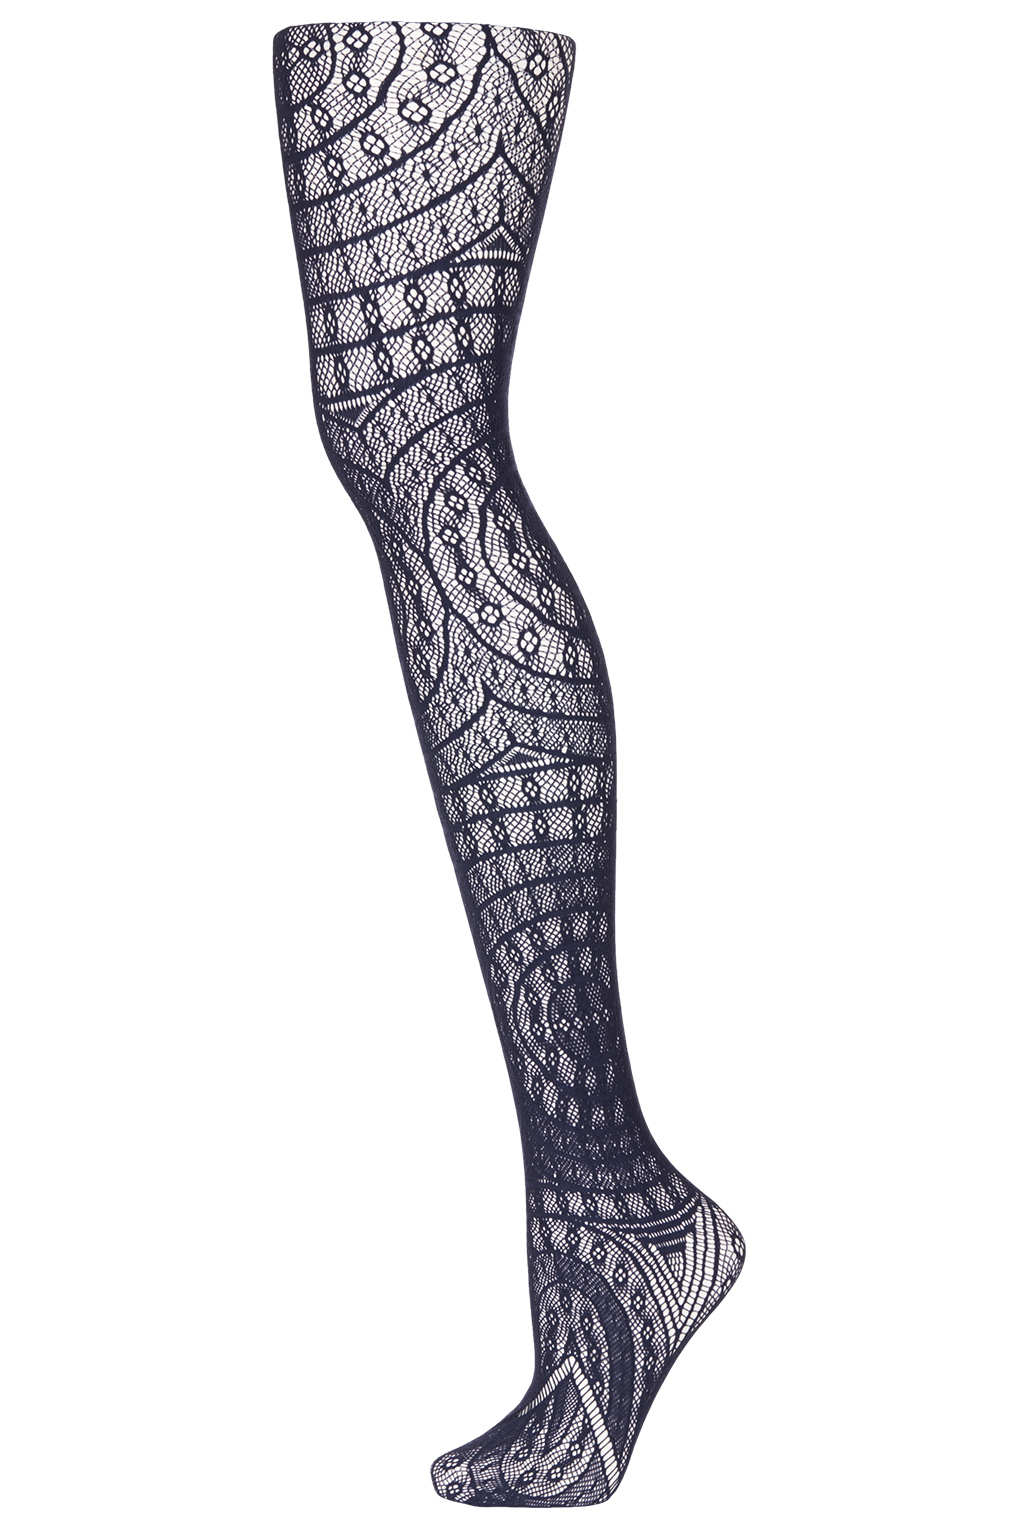 5904c2a6a20 TOPSHOP Navy Gothic Look Lace Tights in Blue - Lyst